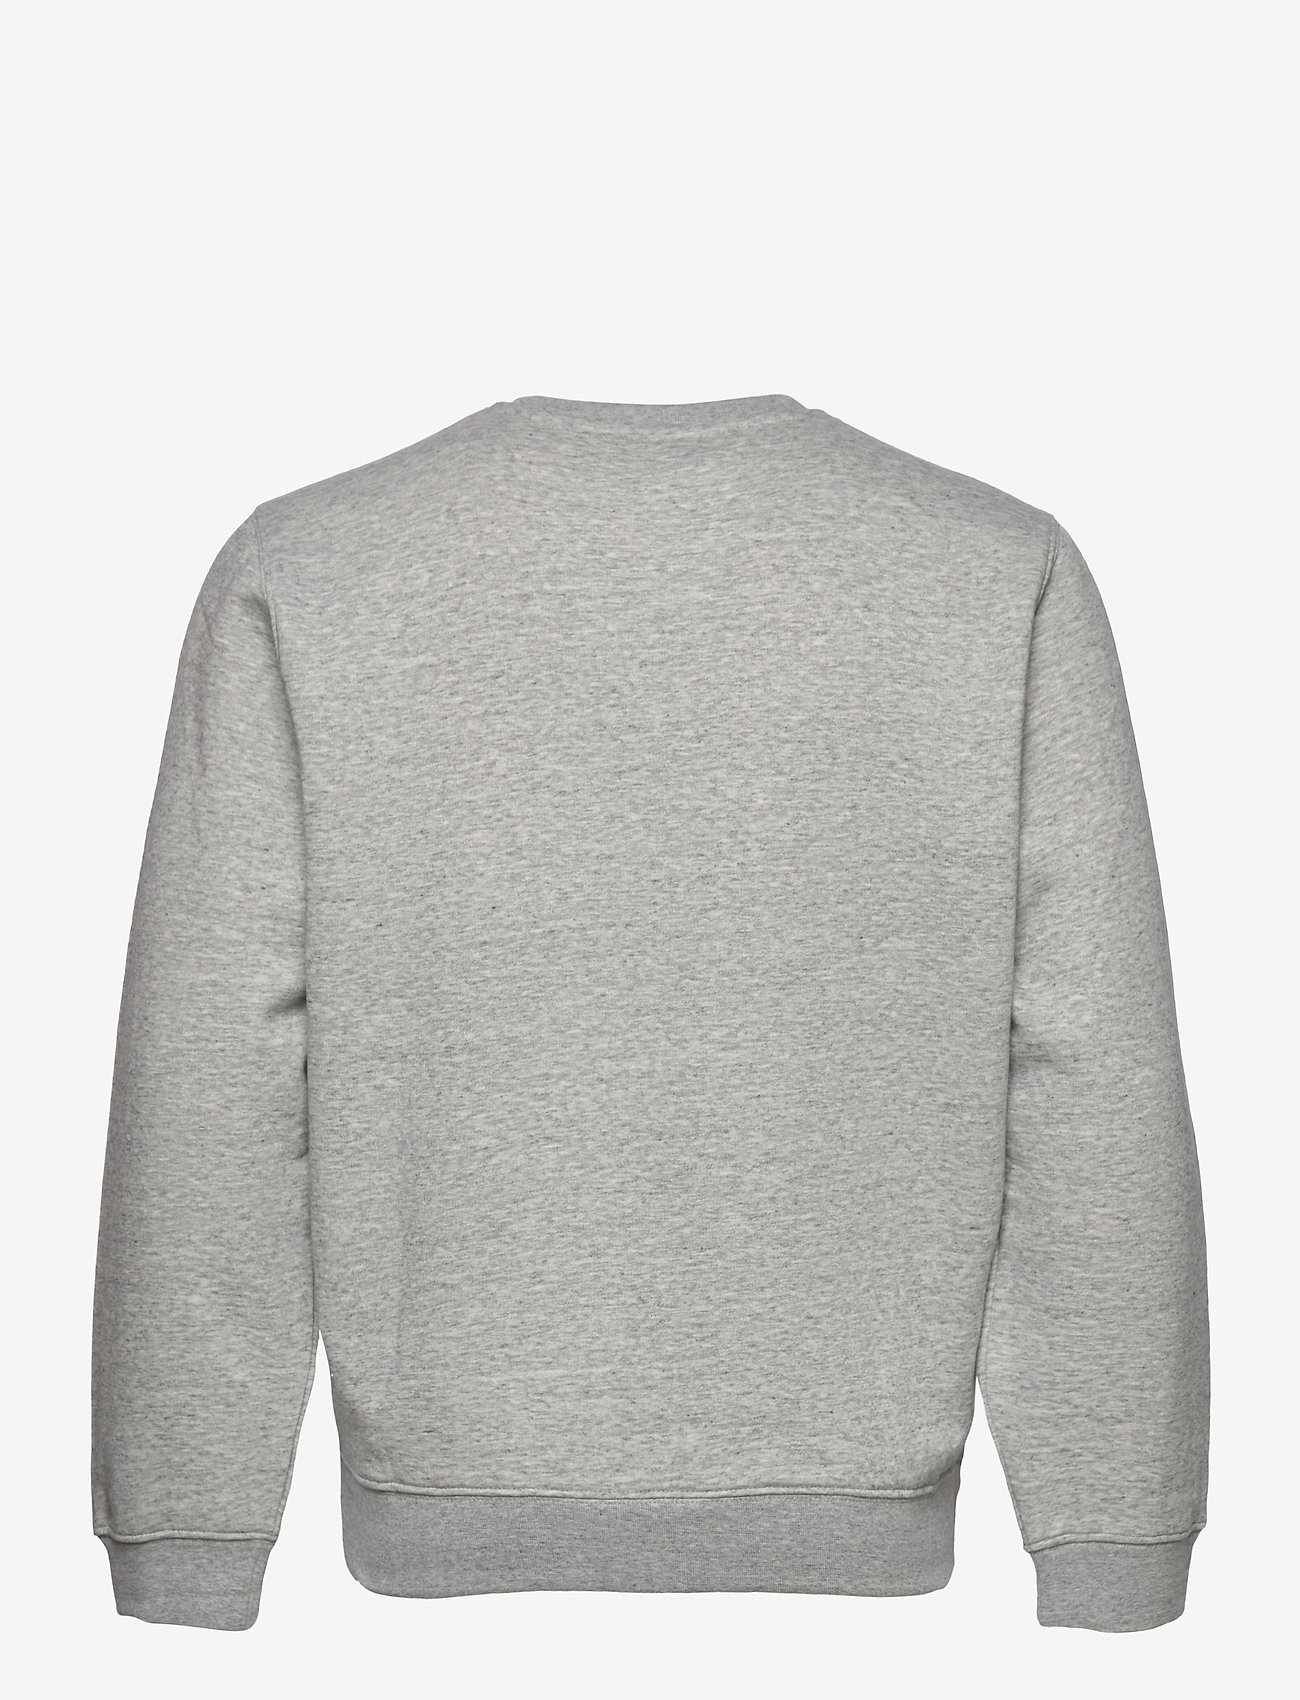 Champion Crewneck Sweatshirt - Sweatshirts NEW OXFORD GREY MELANGE - Menn Klær